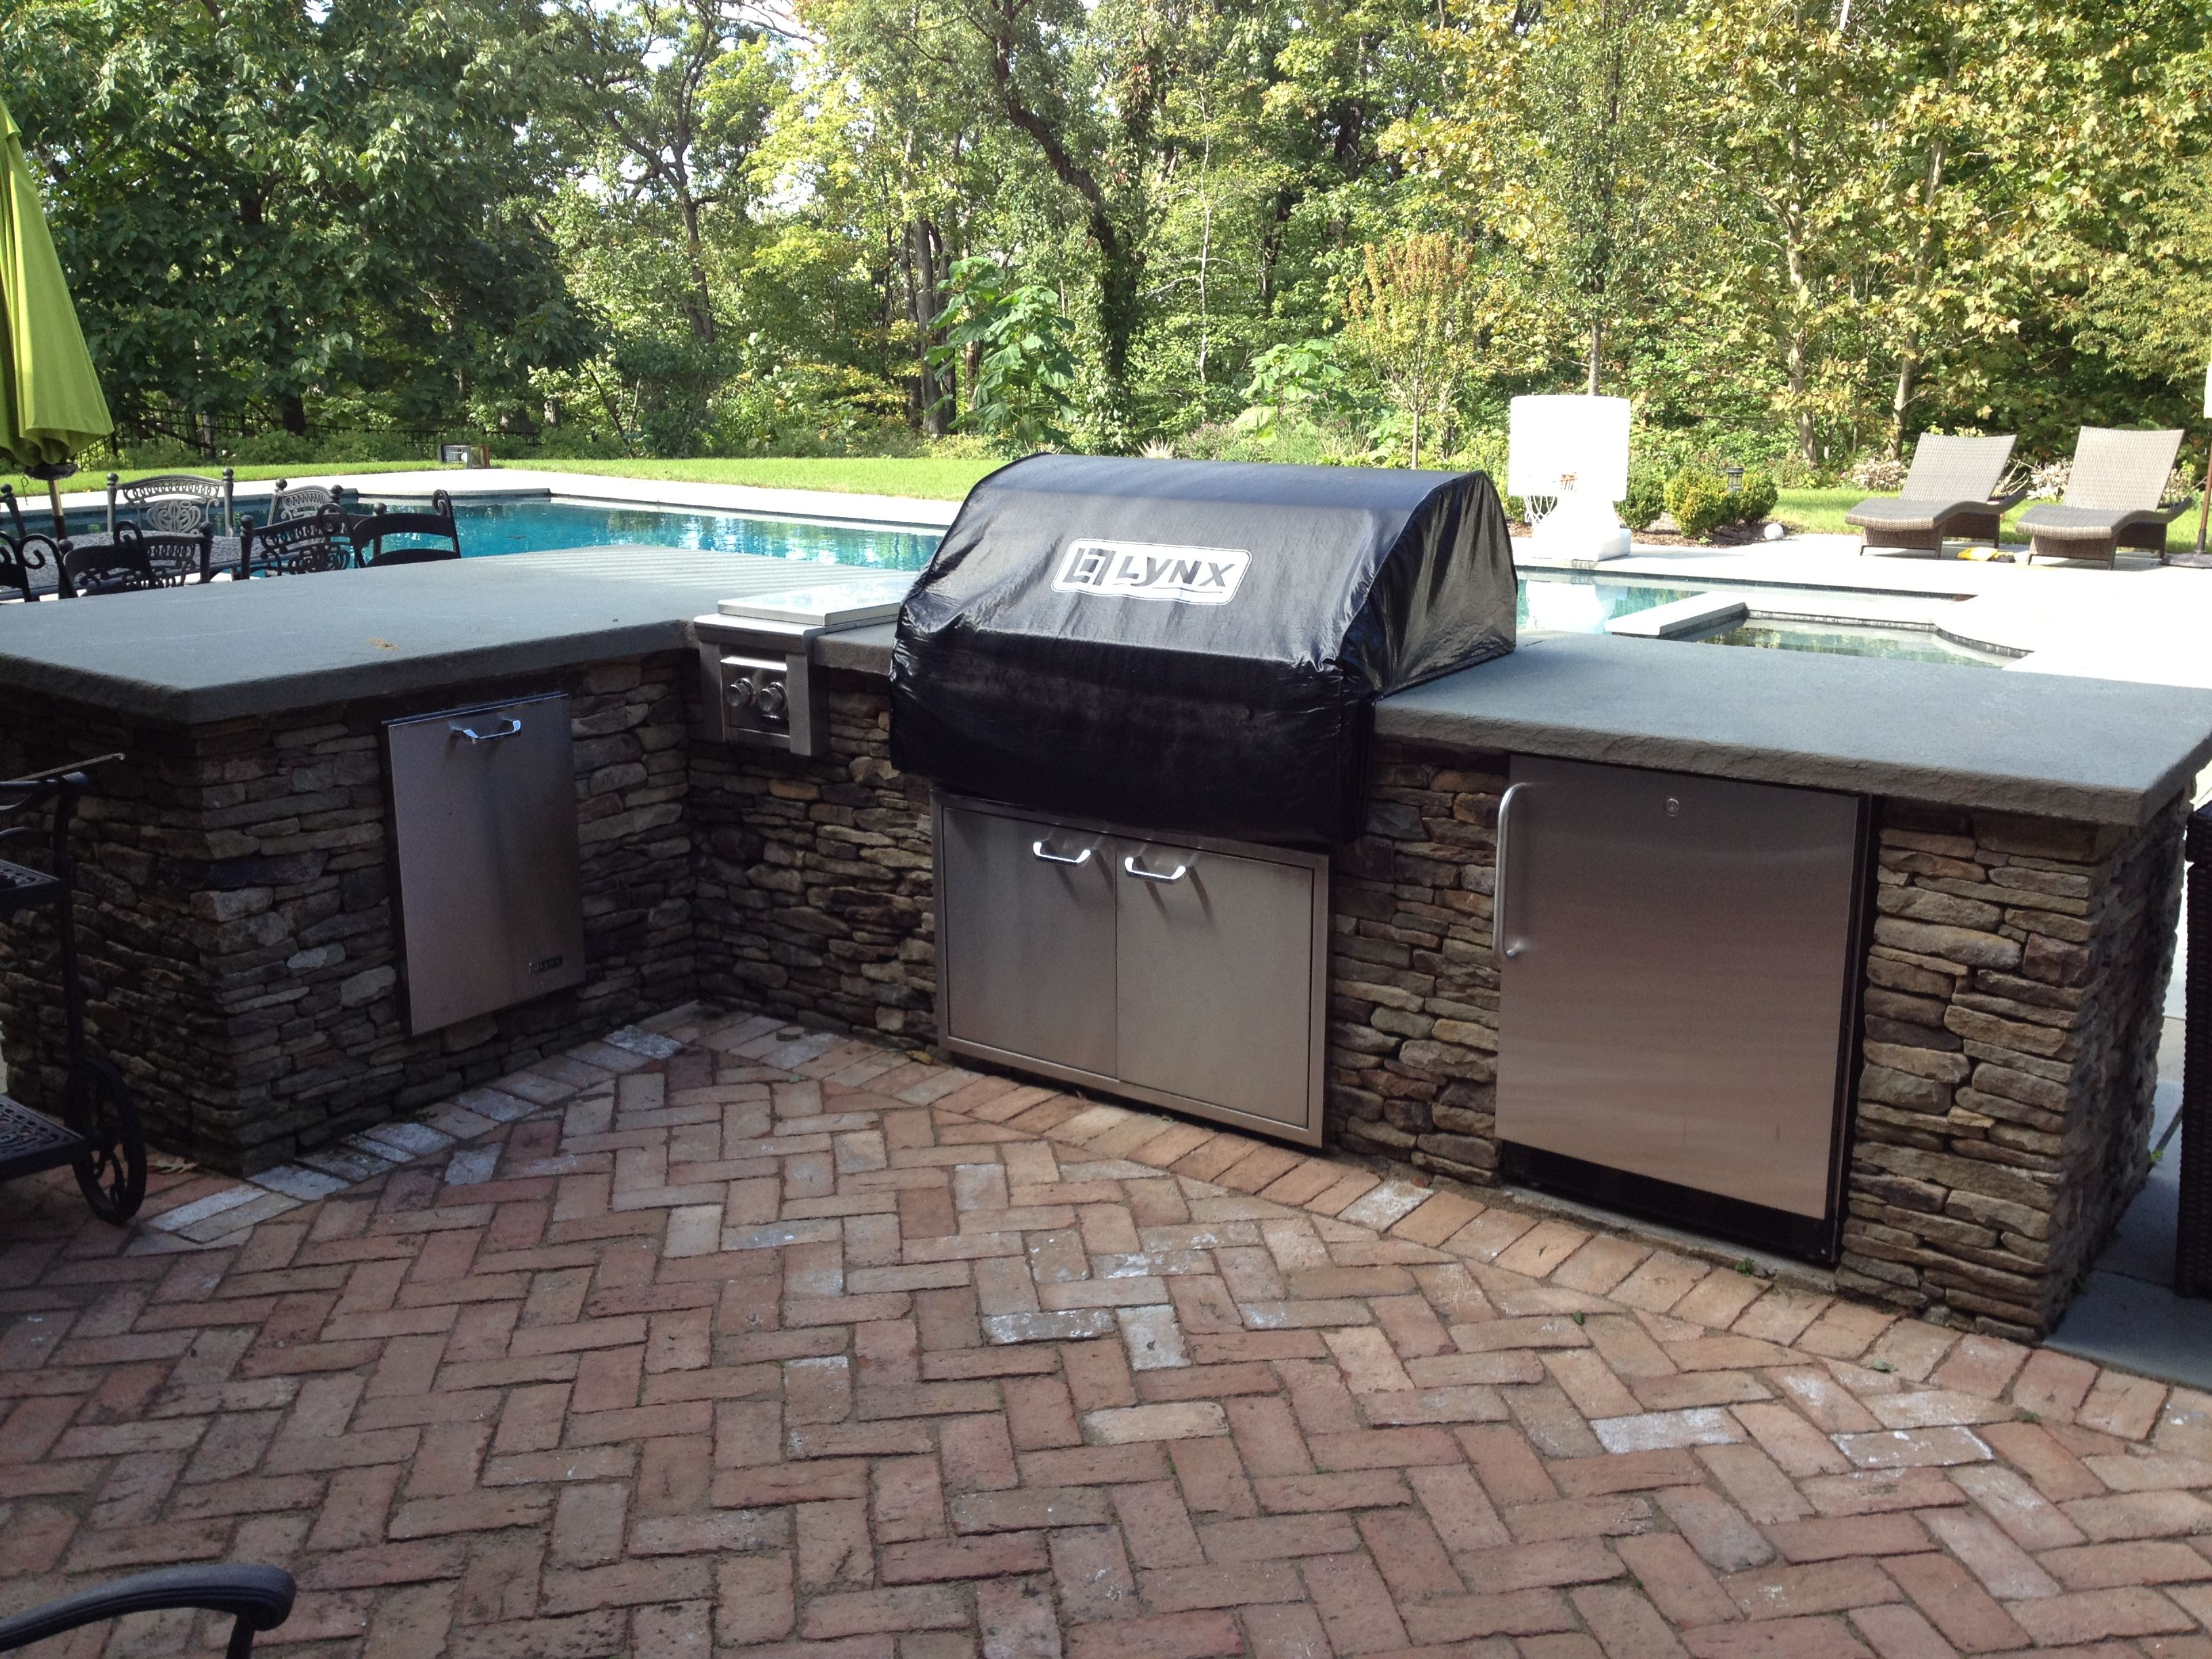 of patio grill patios and gas new amp firepits natural graphics badgesforvets paver sand fresh stone rock